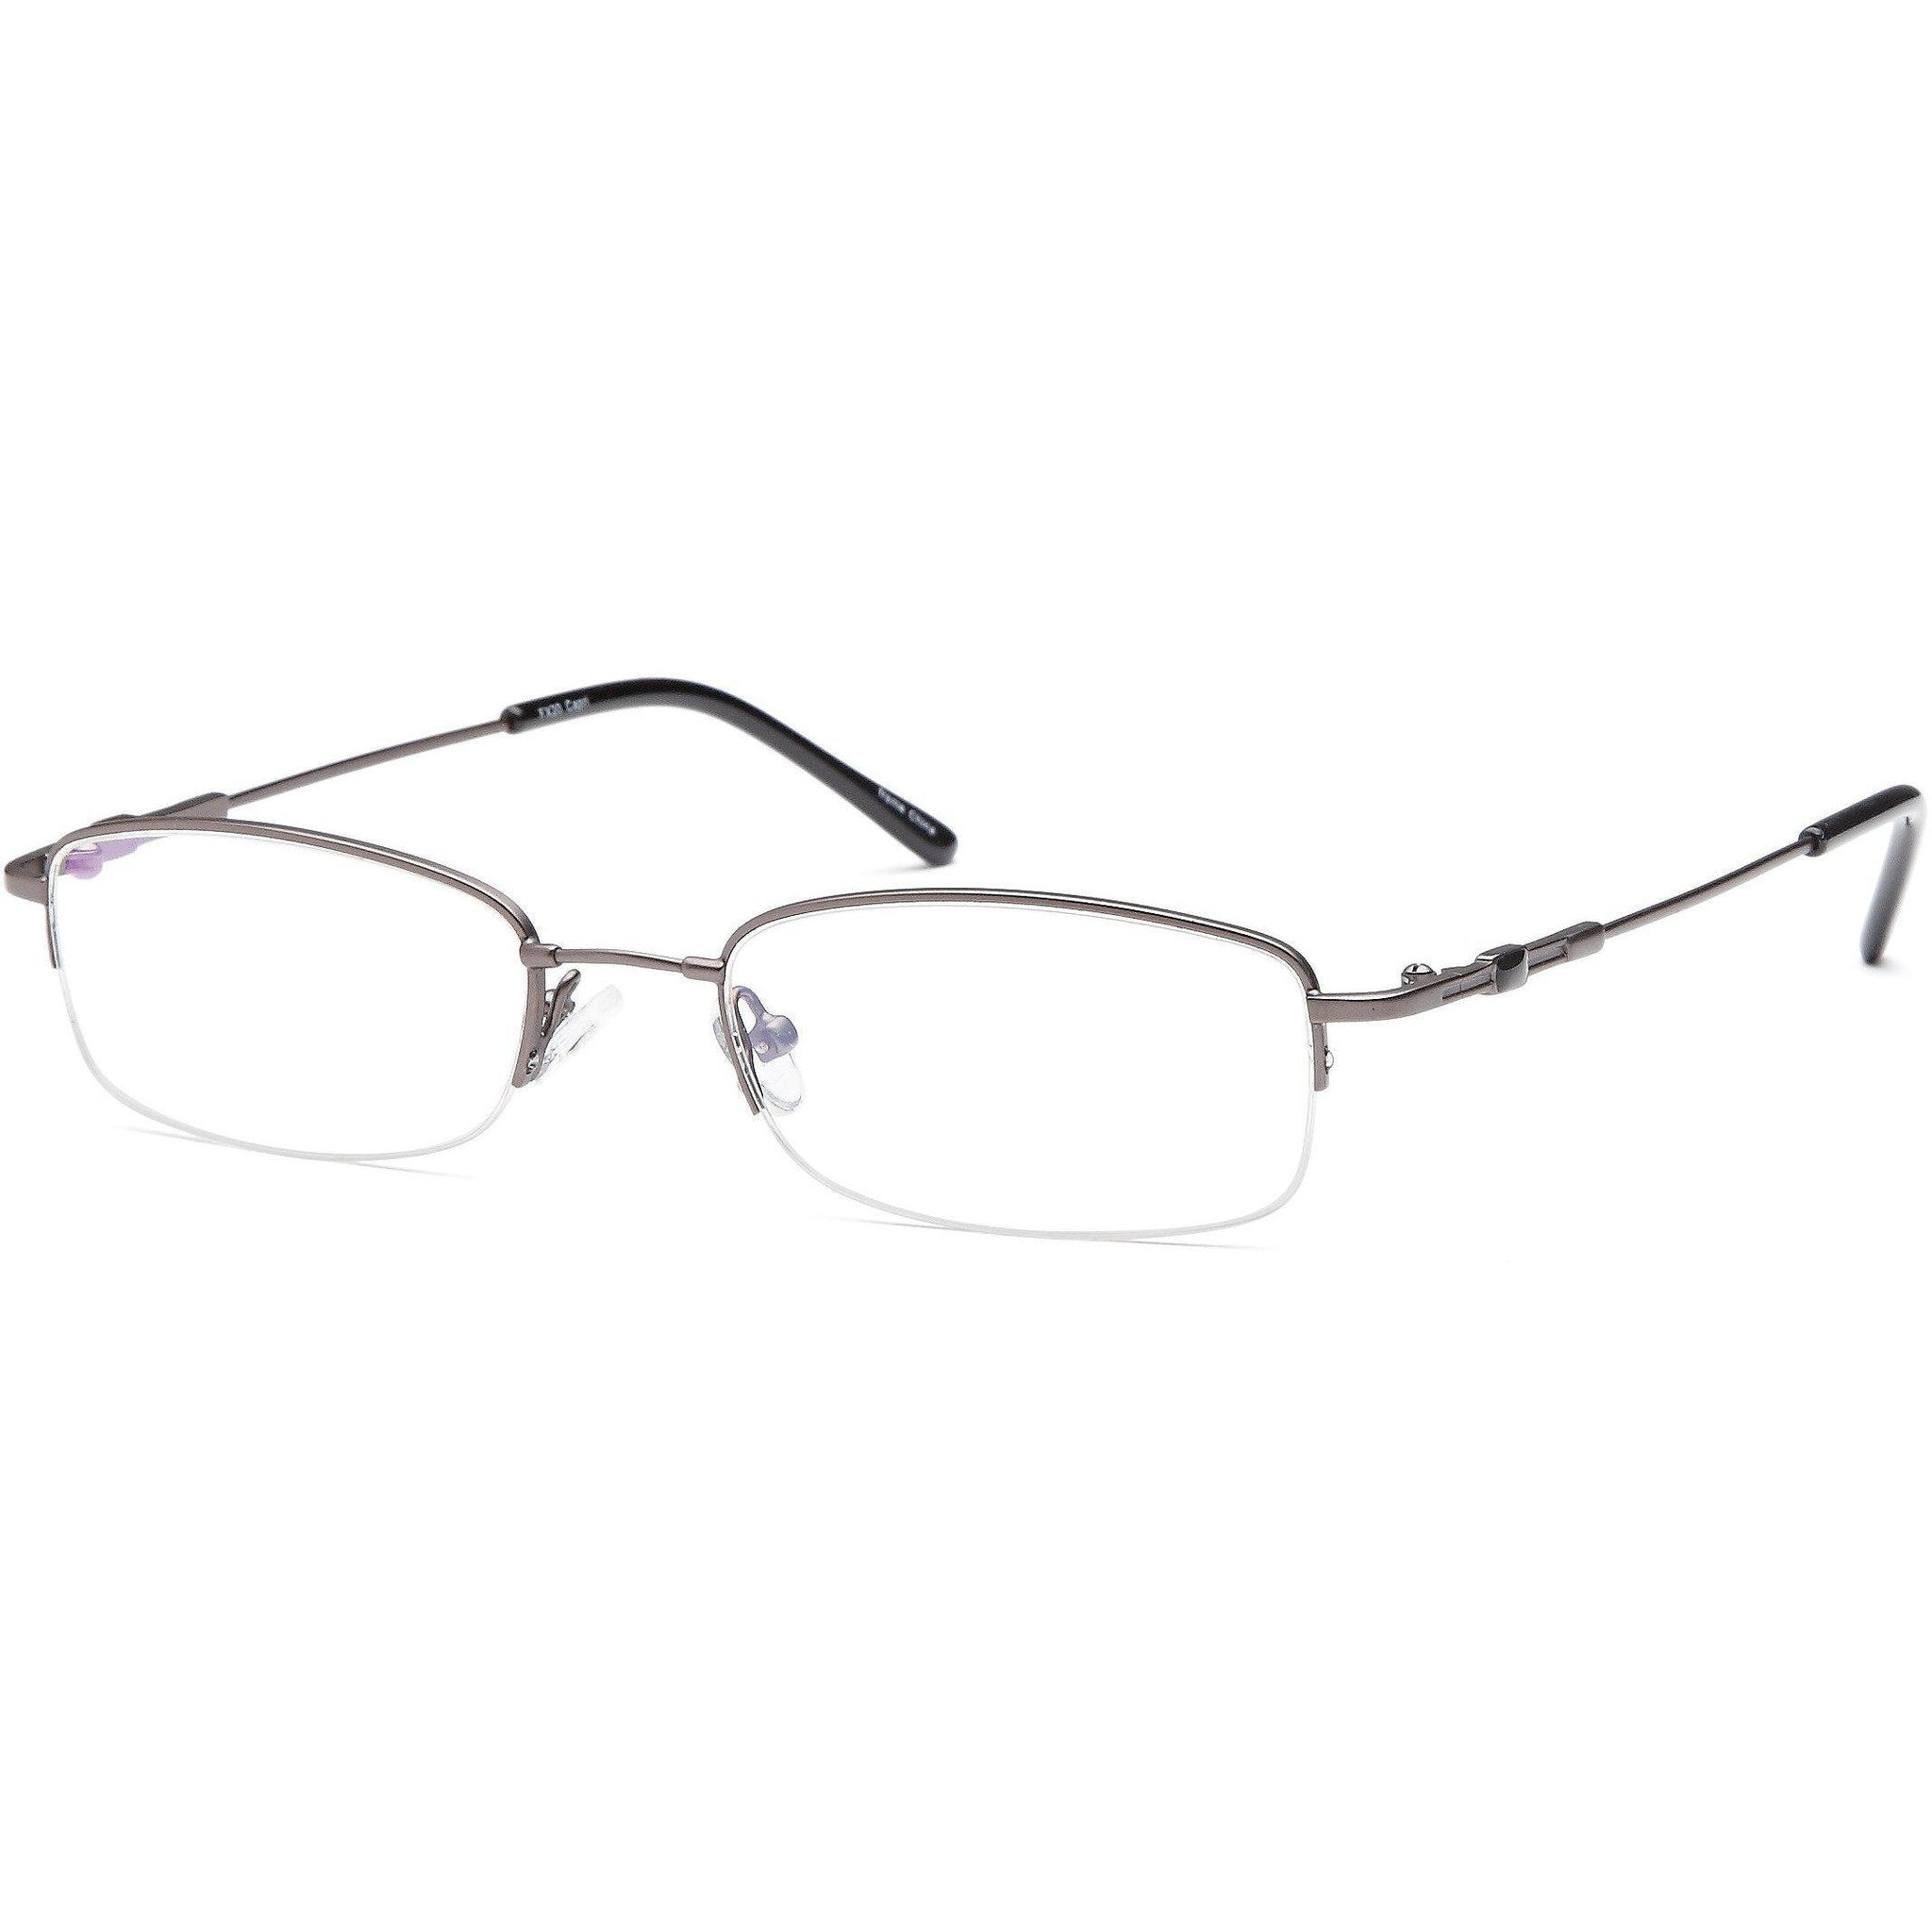 Titanium Prescription Glasses FX 20 Eyeglasses Frame